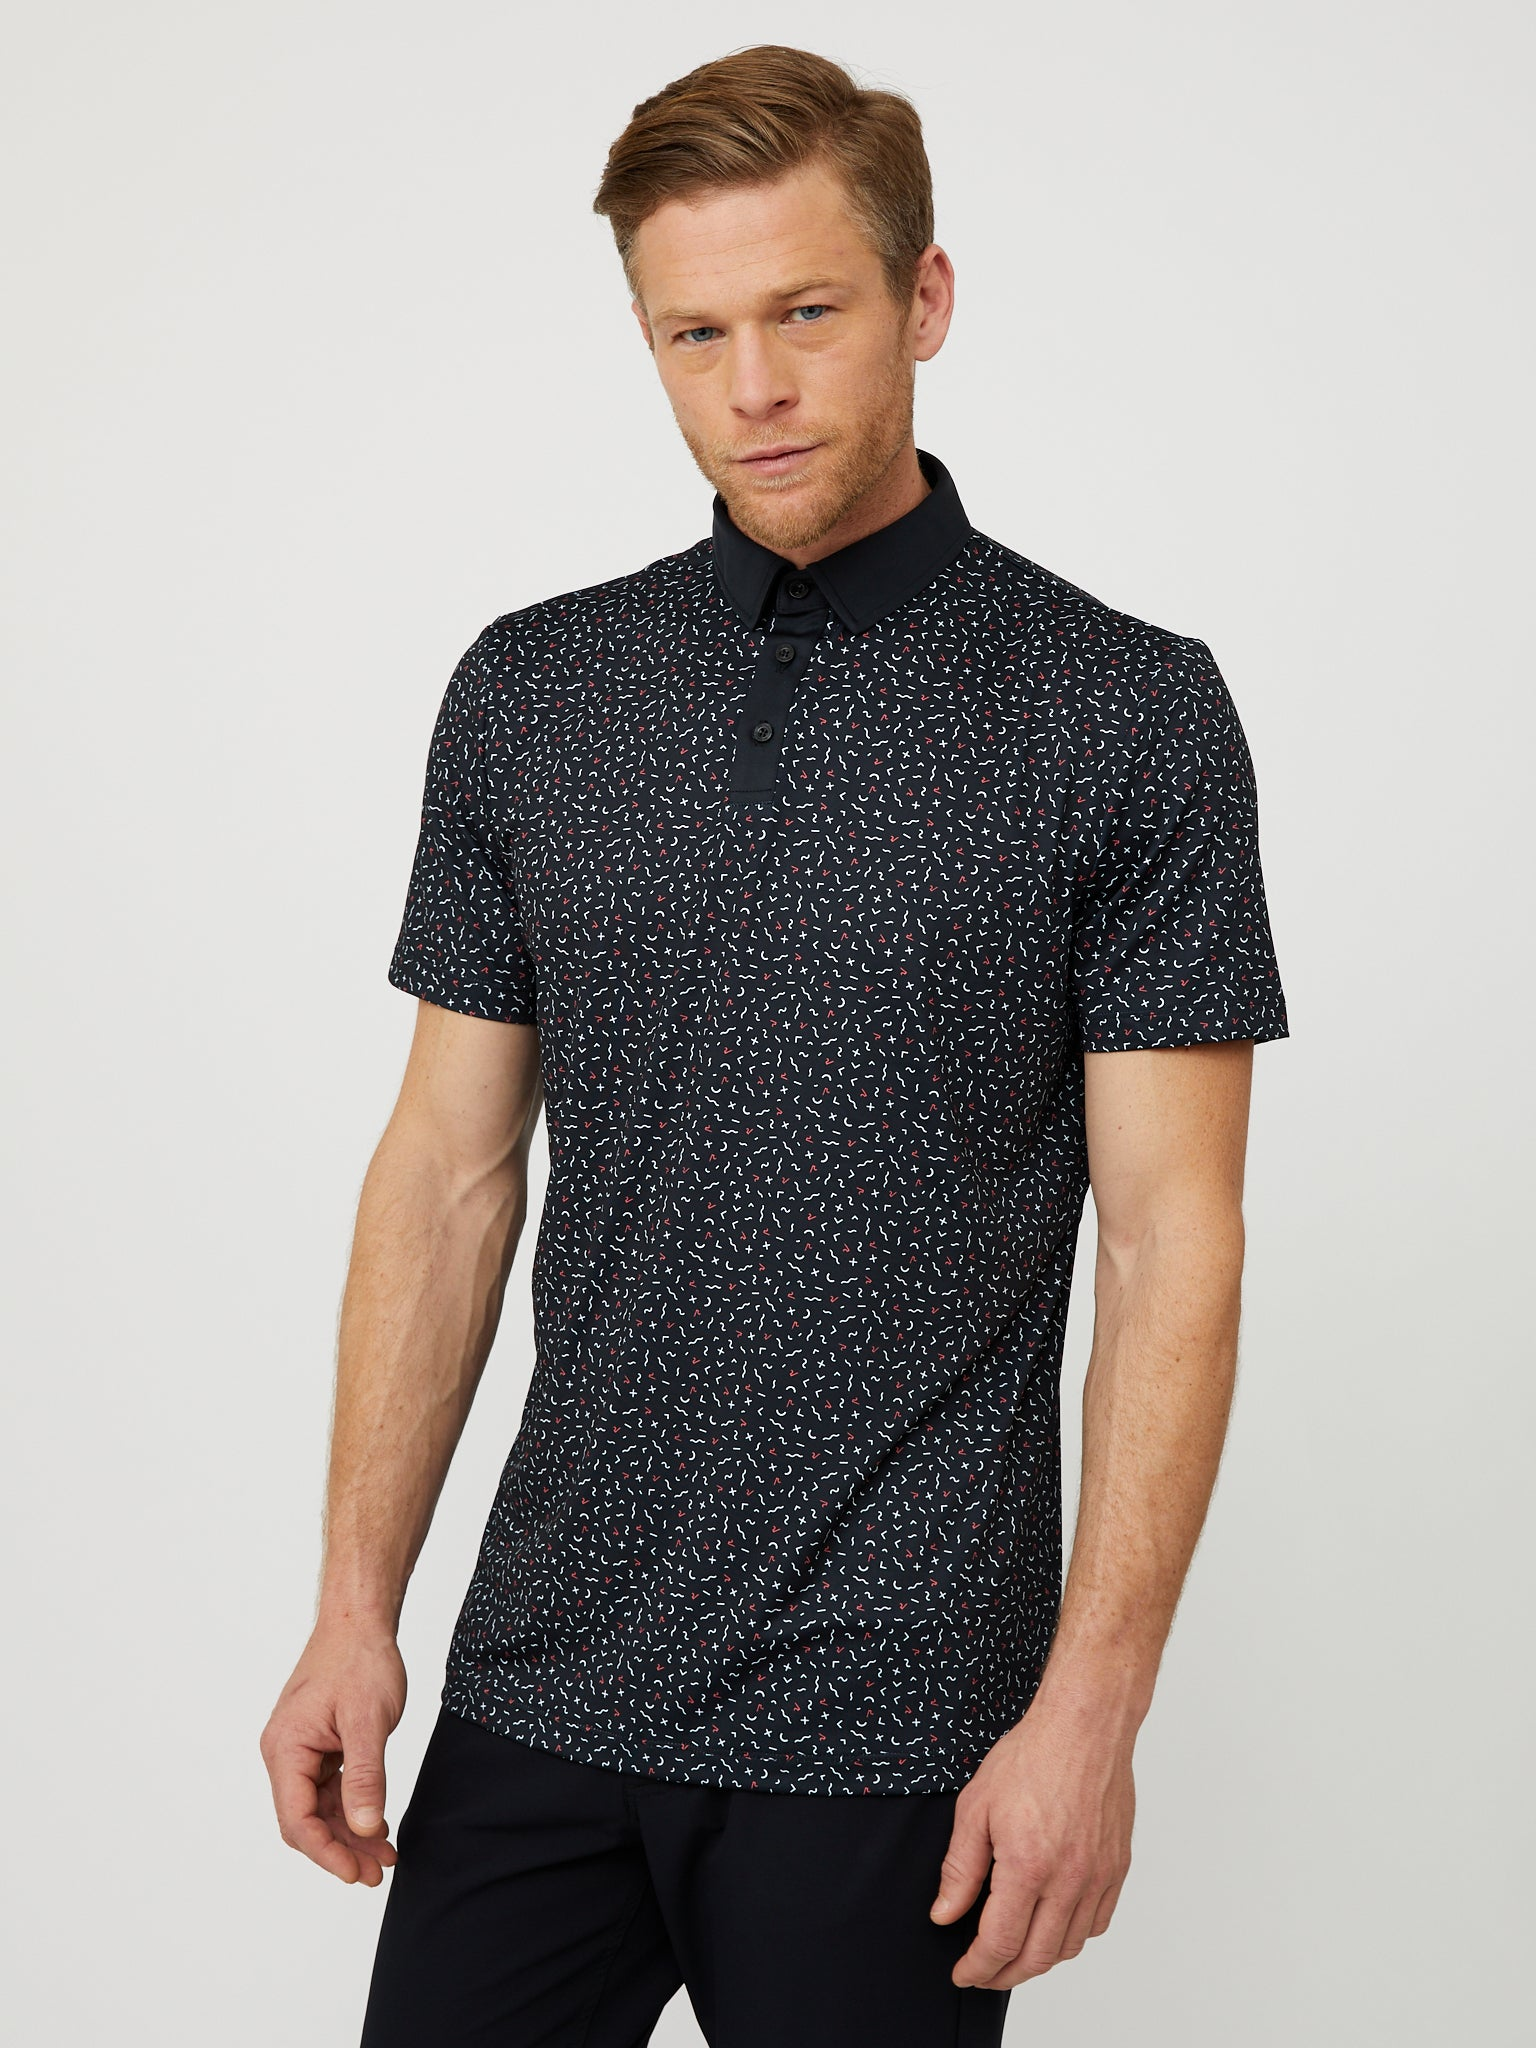 Stanley Polo in Black/Multi